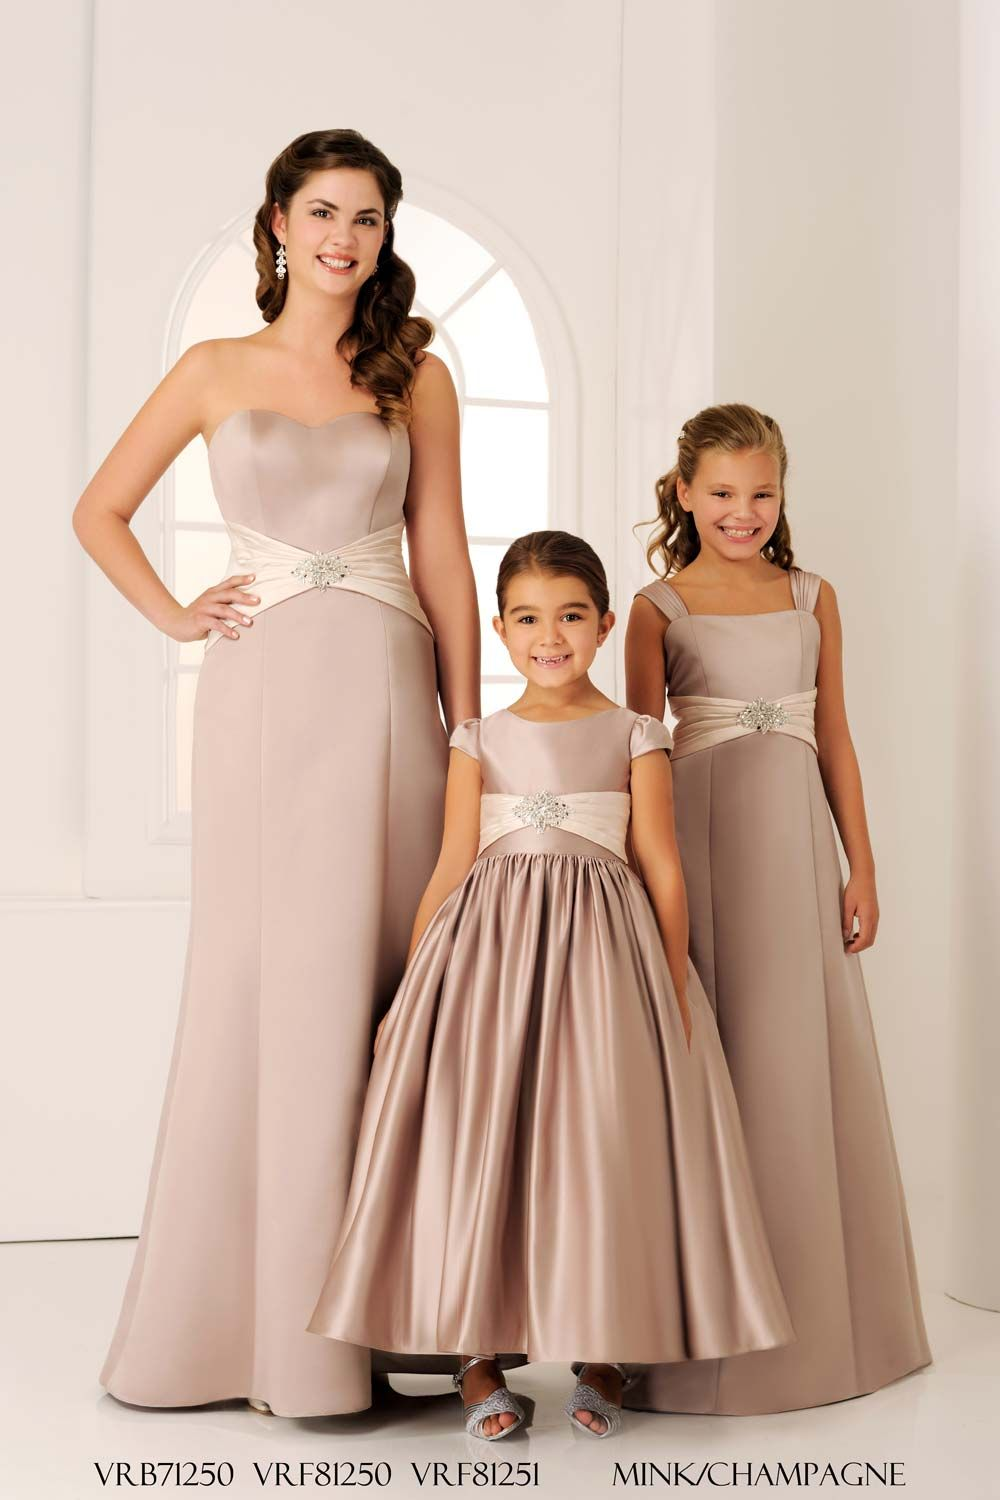 15 champagne bridesmaid dresses that your girls will love 15 champagne bridesmaid dresses that your girls will love ombrellifo Images